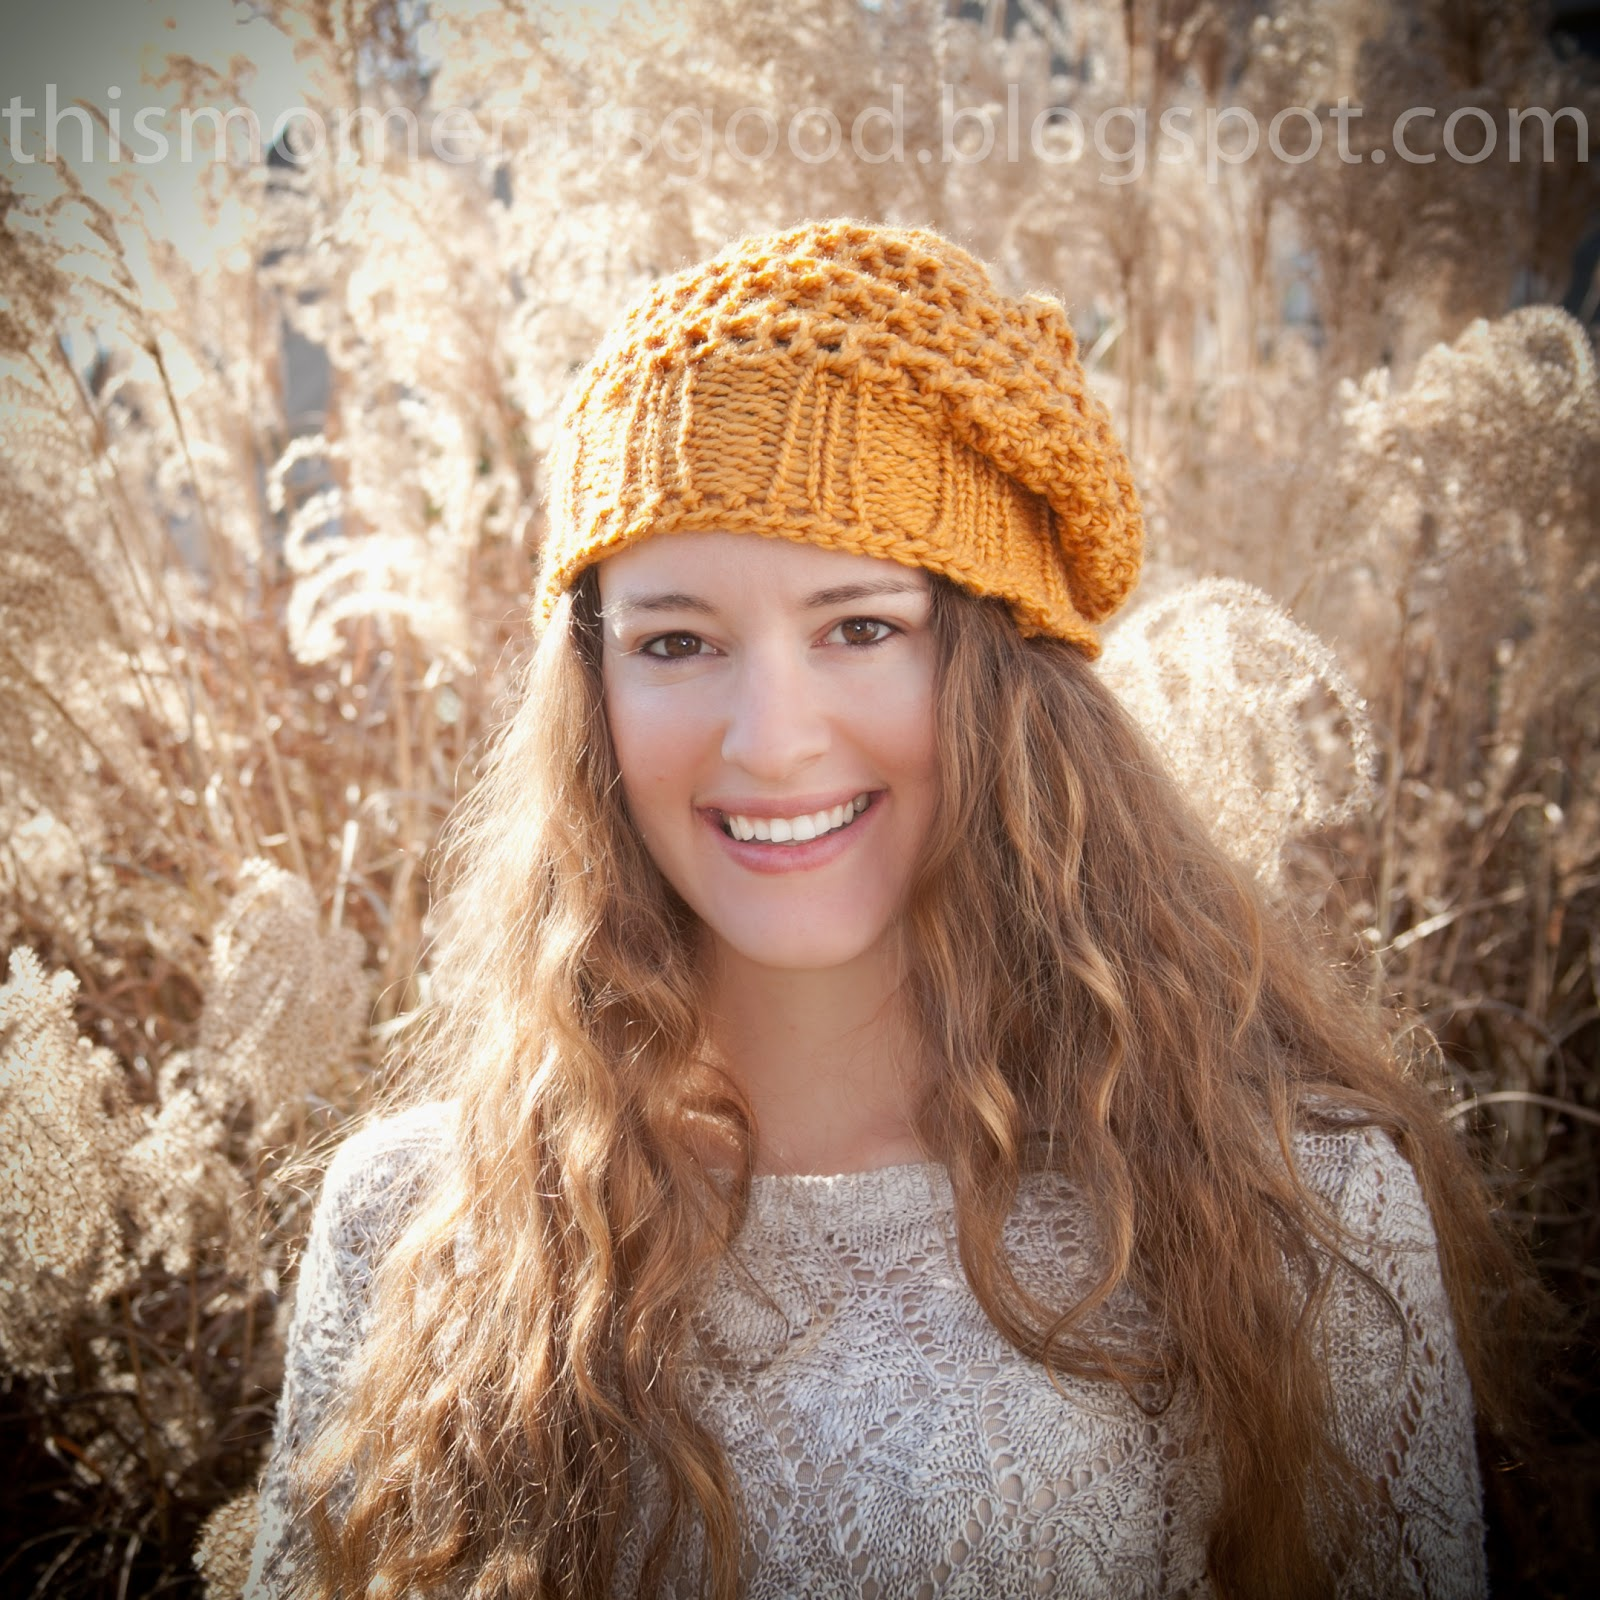 LOOM KNIT HAT PATTERNS! | Loom Knitting by This Moment is Good!